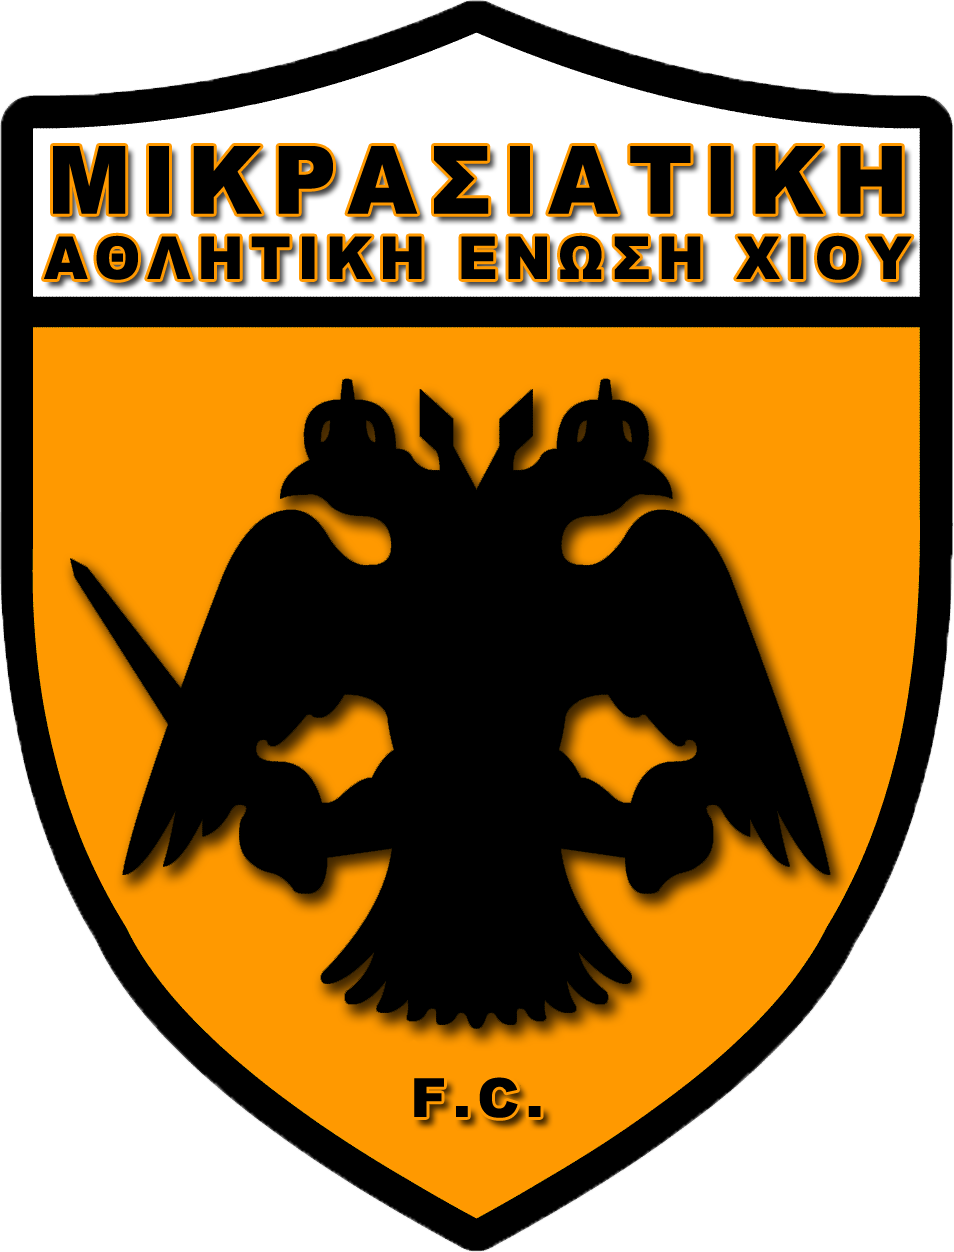 http://www.epsxiou.gr/images/teamLogos/mikra.png